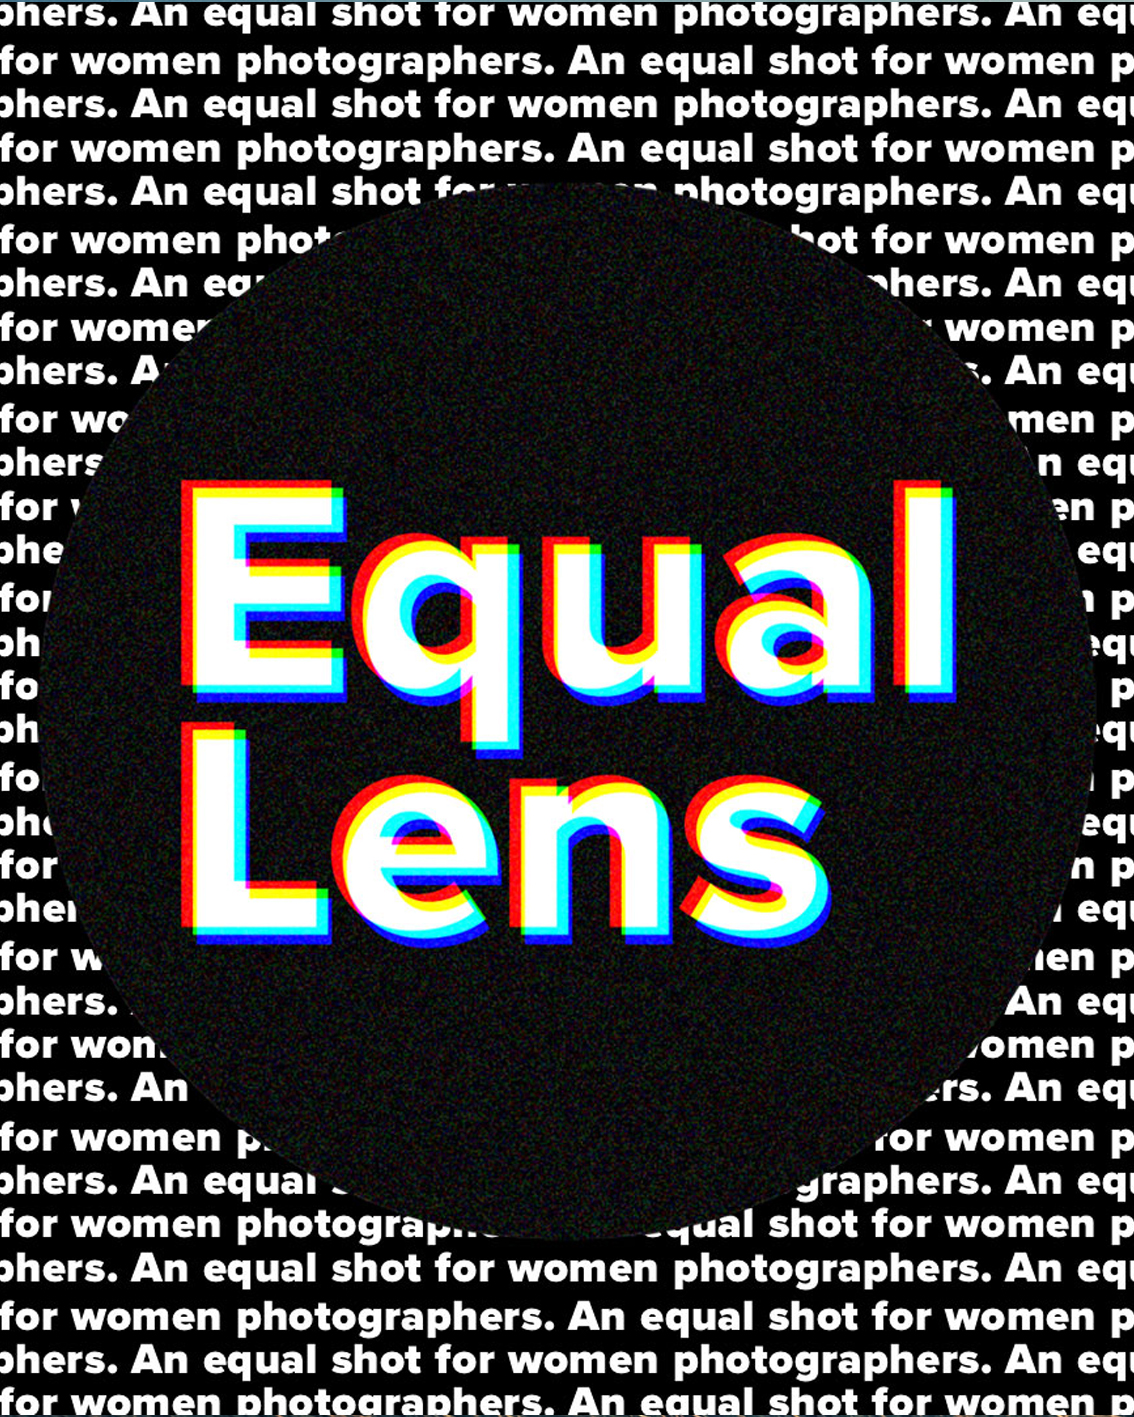 Equal Lens    Equal Lens is an initiative that seeks to redress the gender imbalance in commercial photography. It's not just a matter of fairness, at a time when women shoppers make 85% of consumer purchases, excluding talented female photographers just doesn't make any sense.  Inspired by Free The Bid, we are calling for agencies to include women and men in every photographers list. We are encouraging clients and agencies to request and produce inclusive lists. And to make these lists easier, we are championing the work of women photographers on our website and beyond.  Together, we can give women photographers an equal shot.